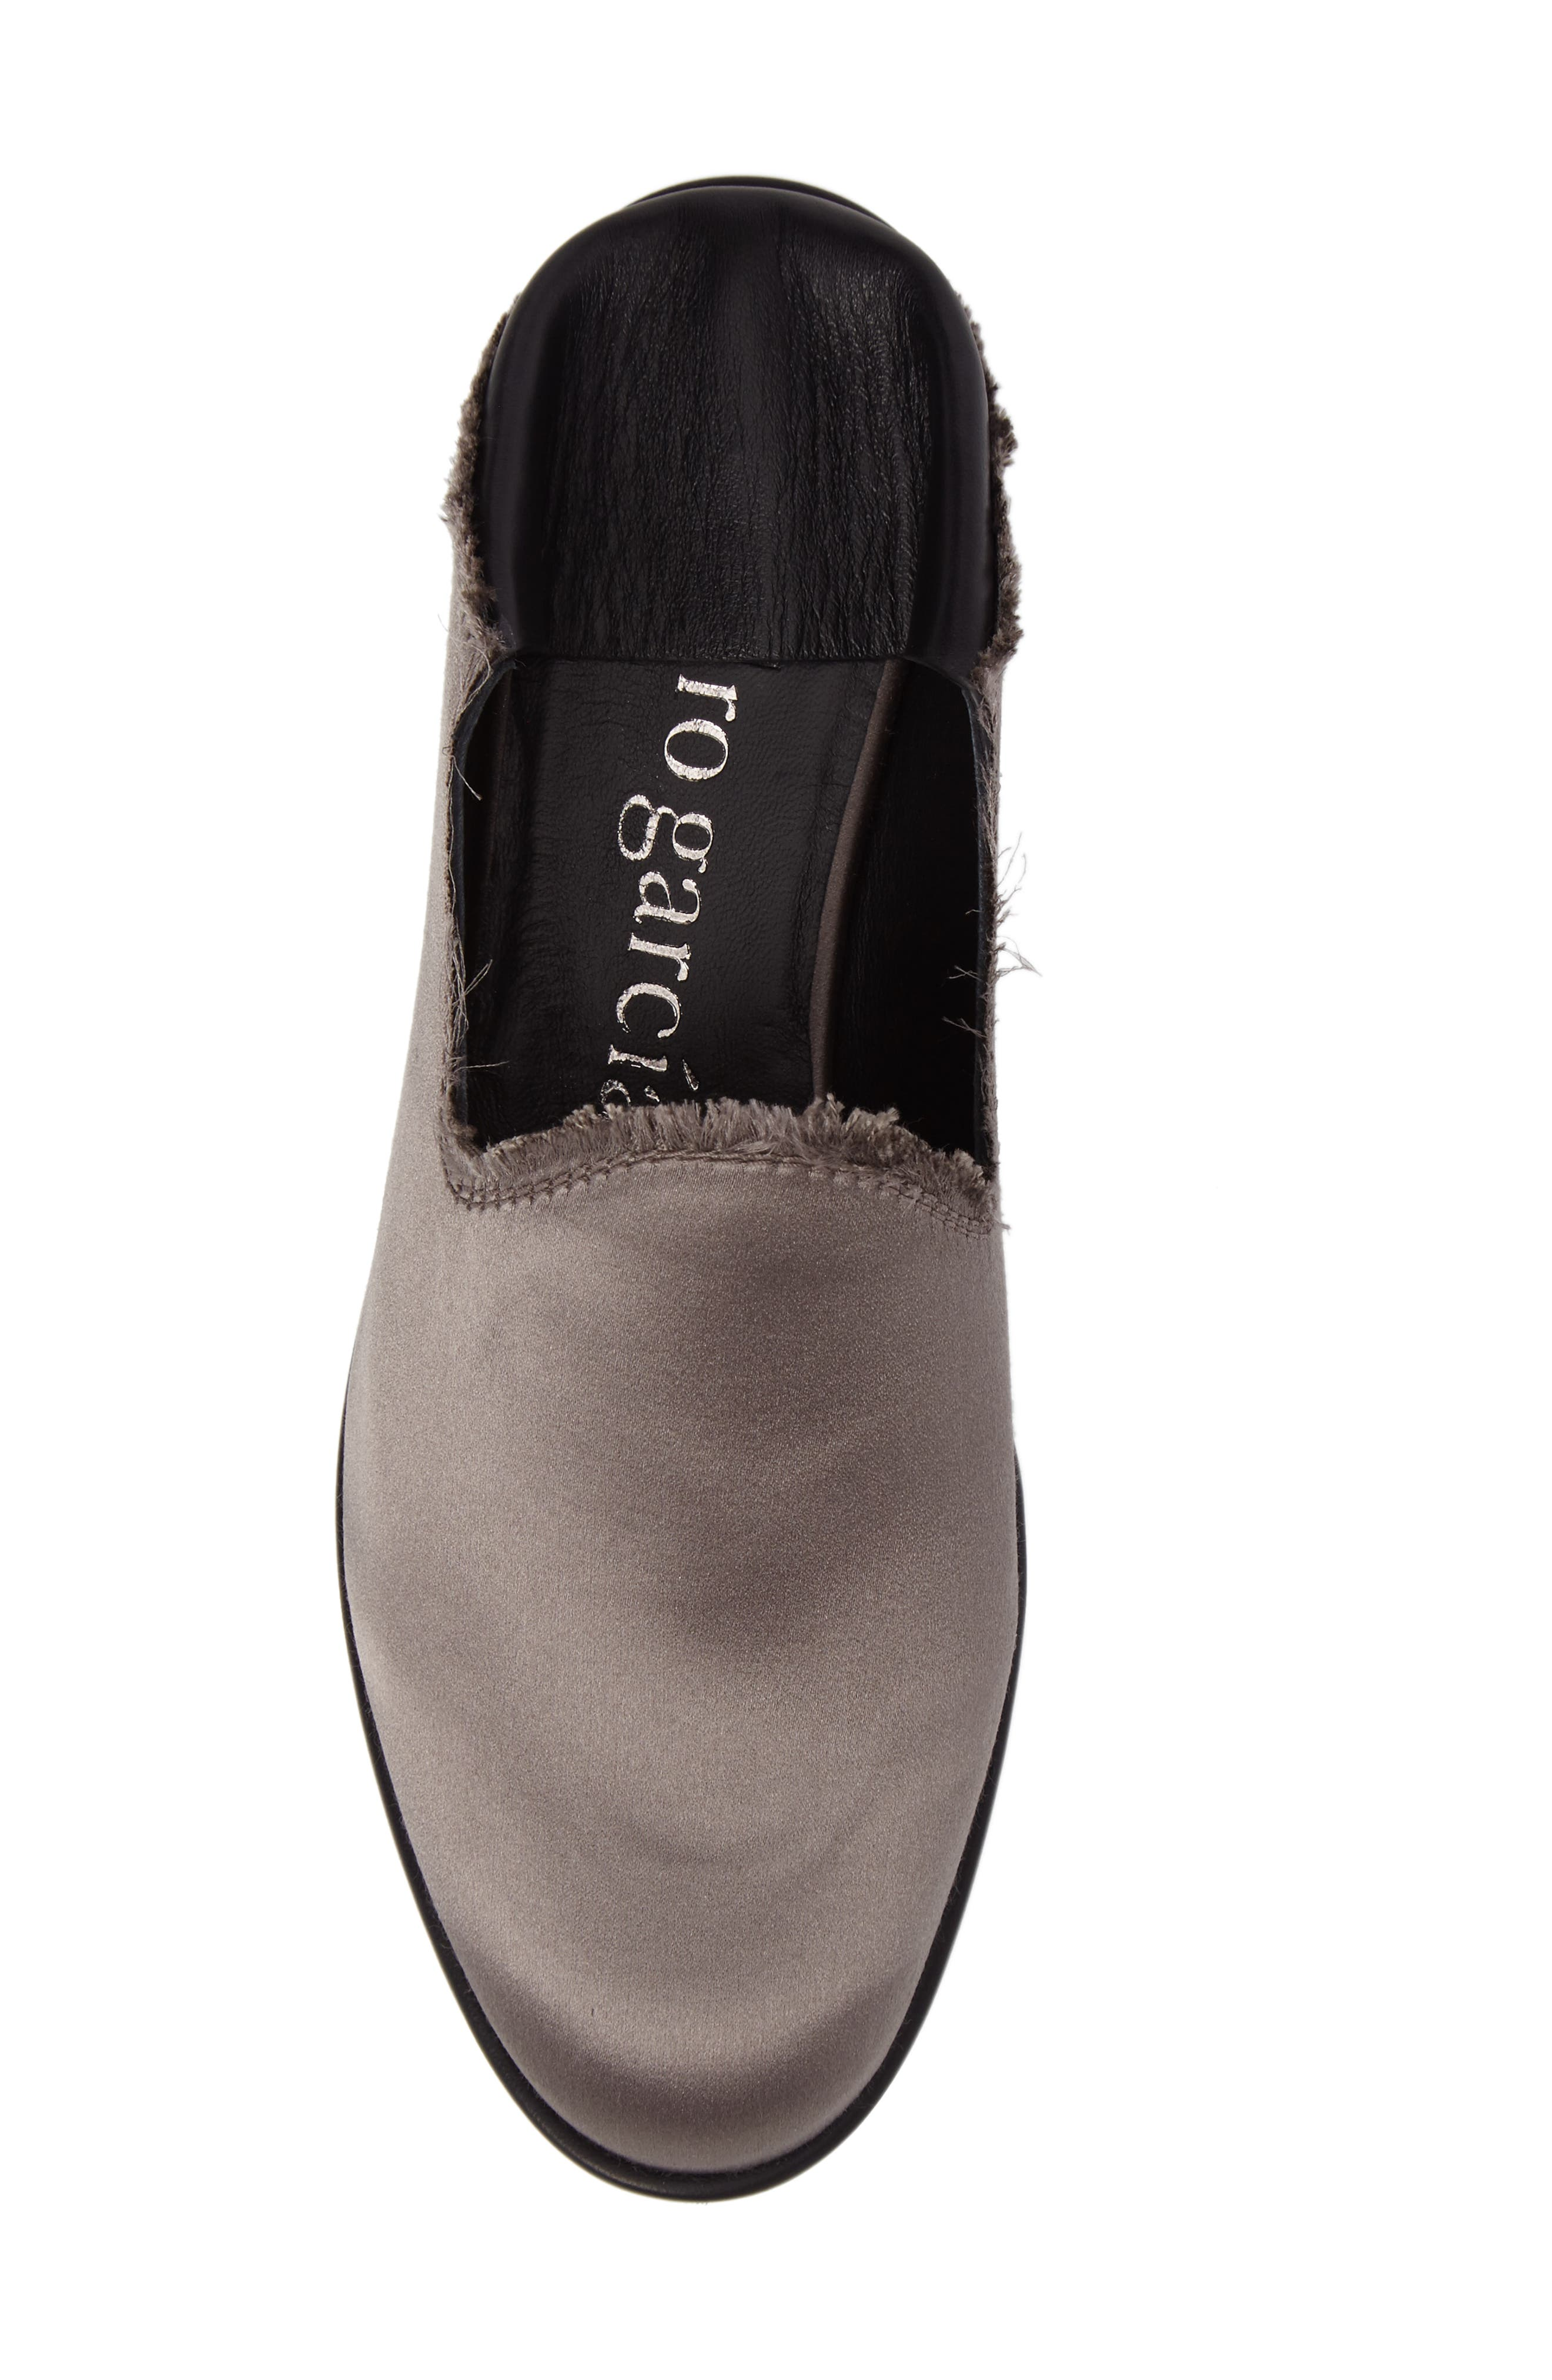 Yamir Convertible Loafer,                             Alternate thumbnail 6, color,                             020